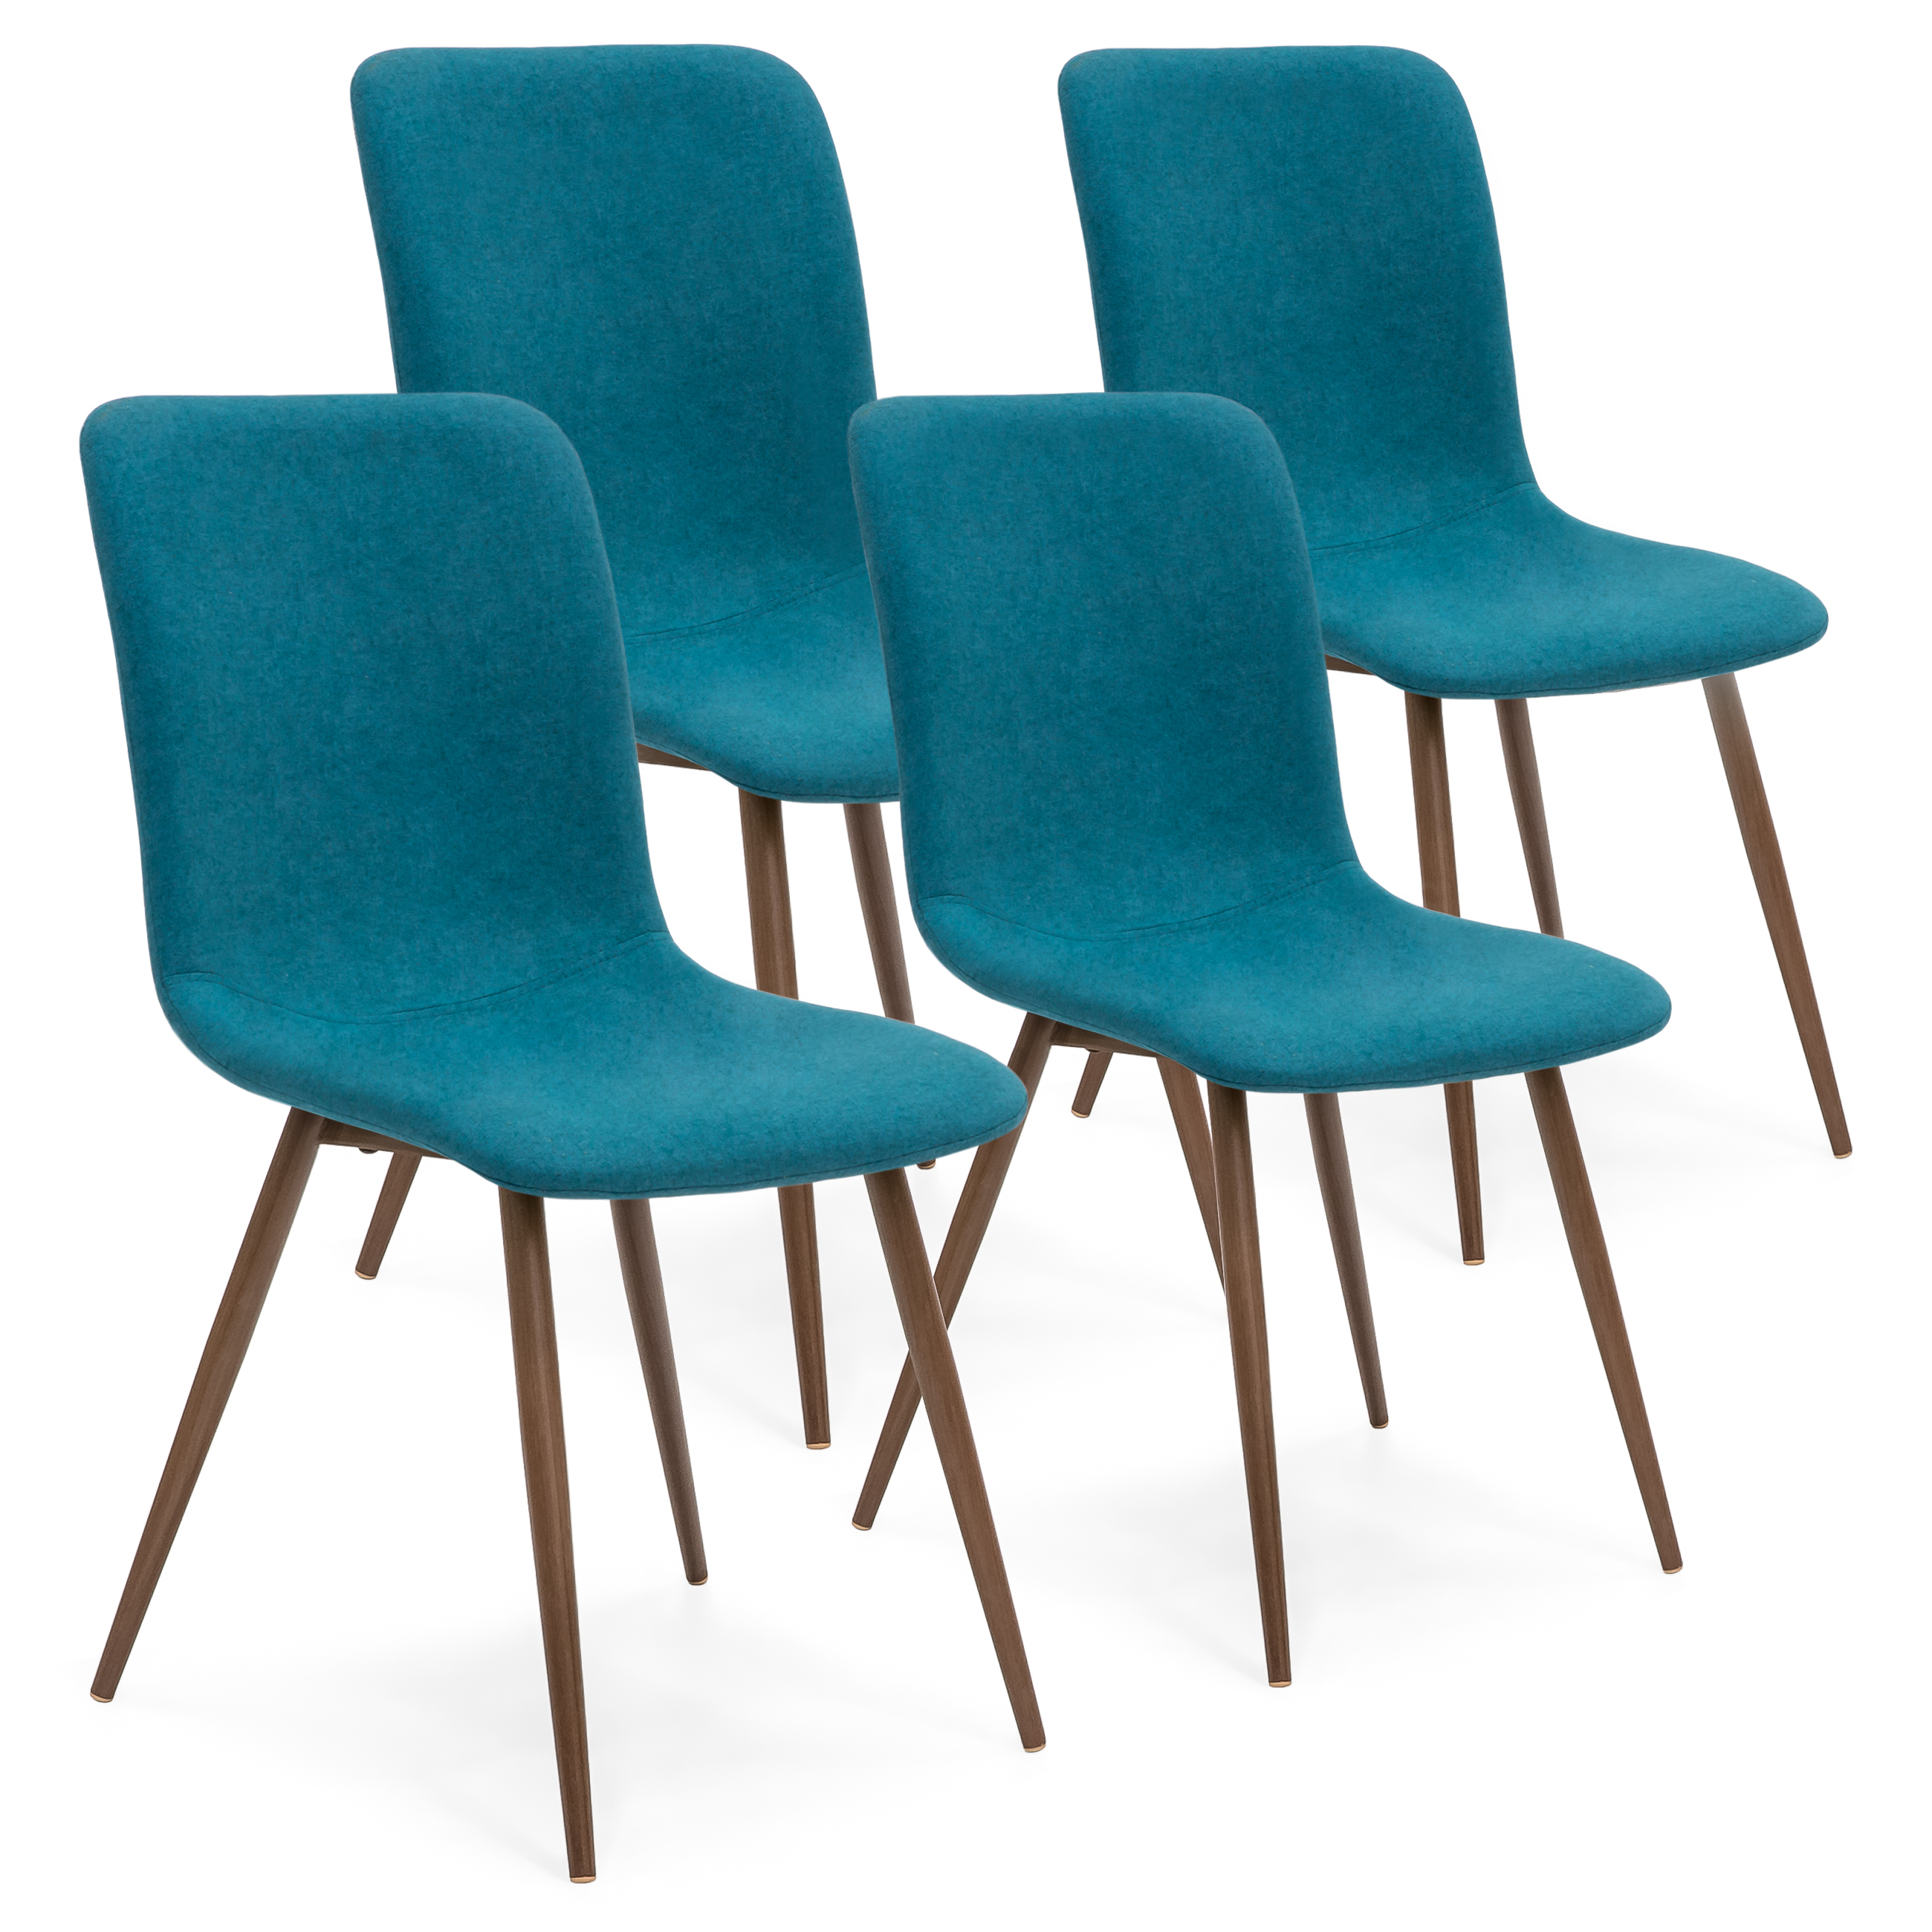 4 dining room chairs gray wood best choice products set of midcentury modern dining room chairs w fabric of